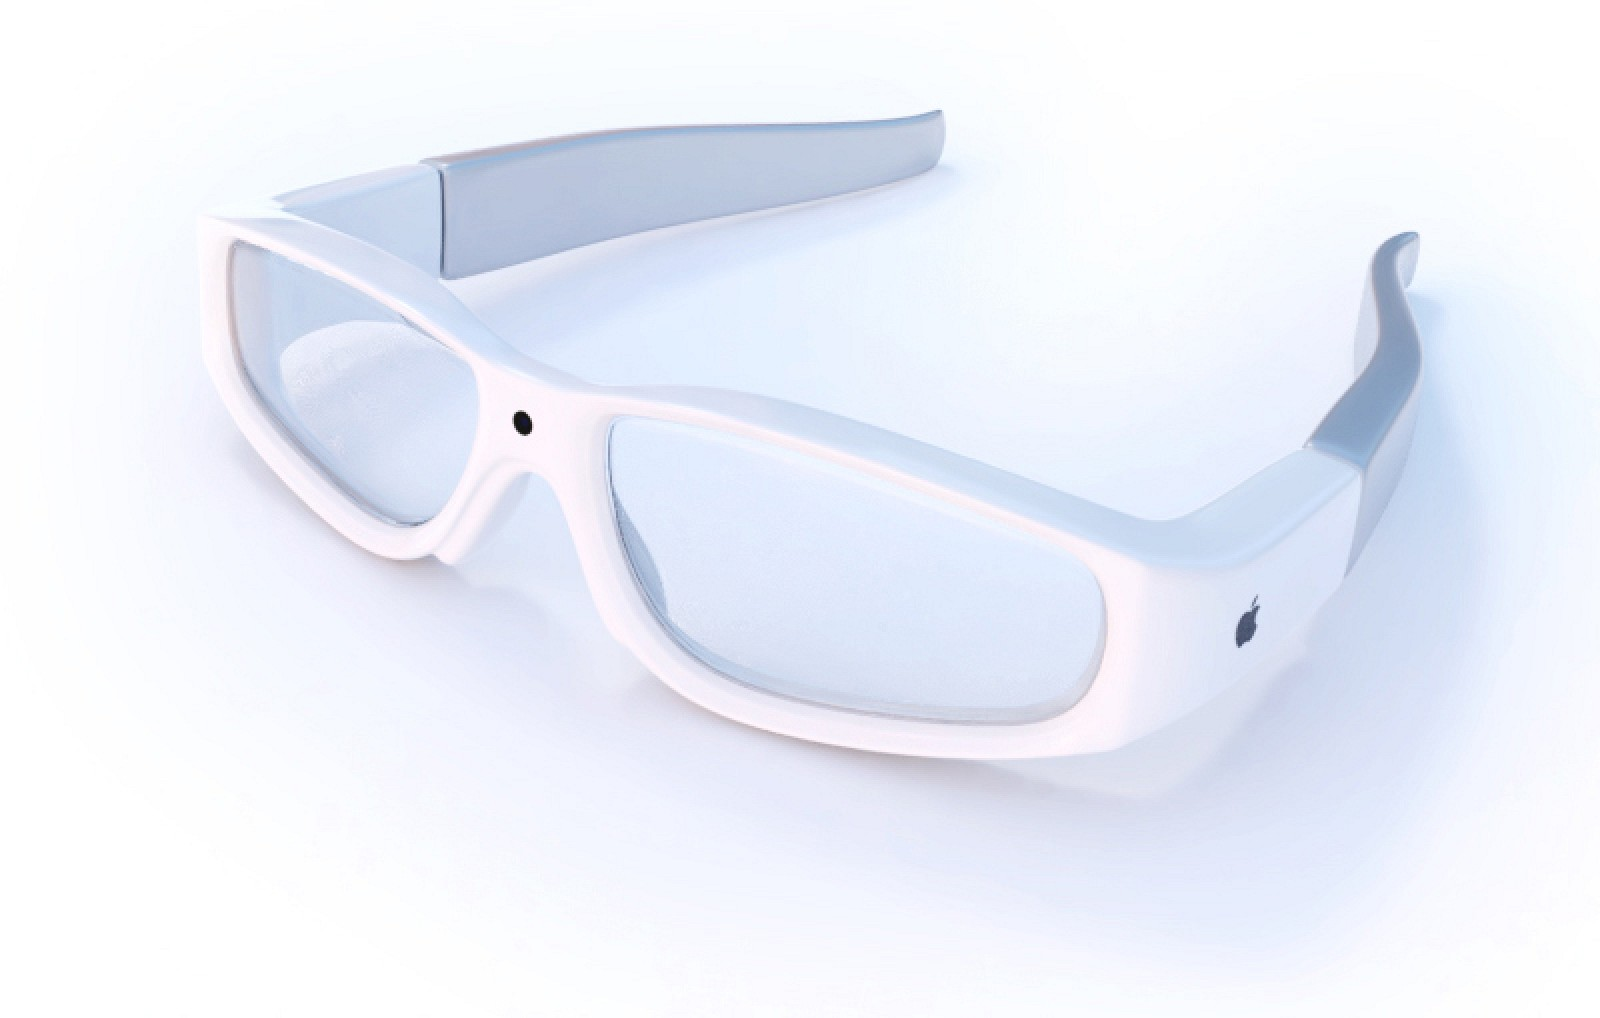 New AR Sensor Coming to 2020 iPad Pro and iPhone Models, AR/VR Headset as Soon as 2021